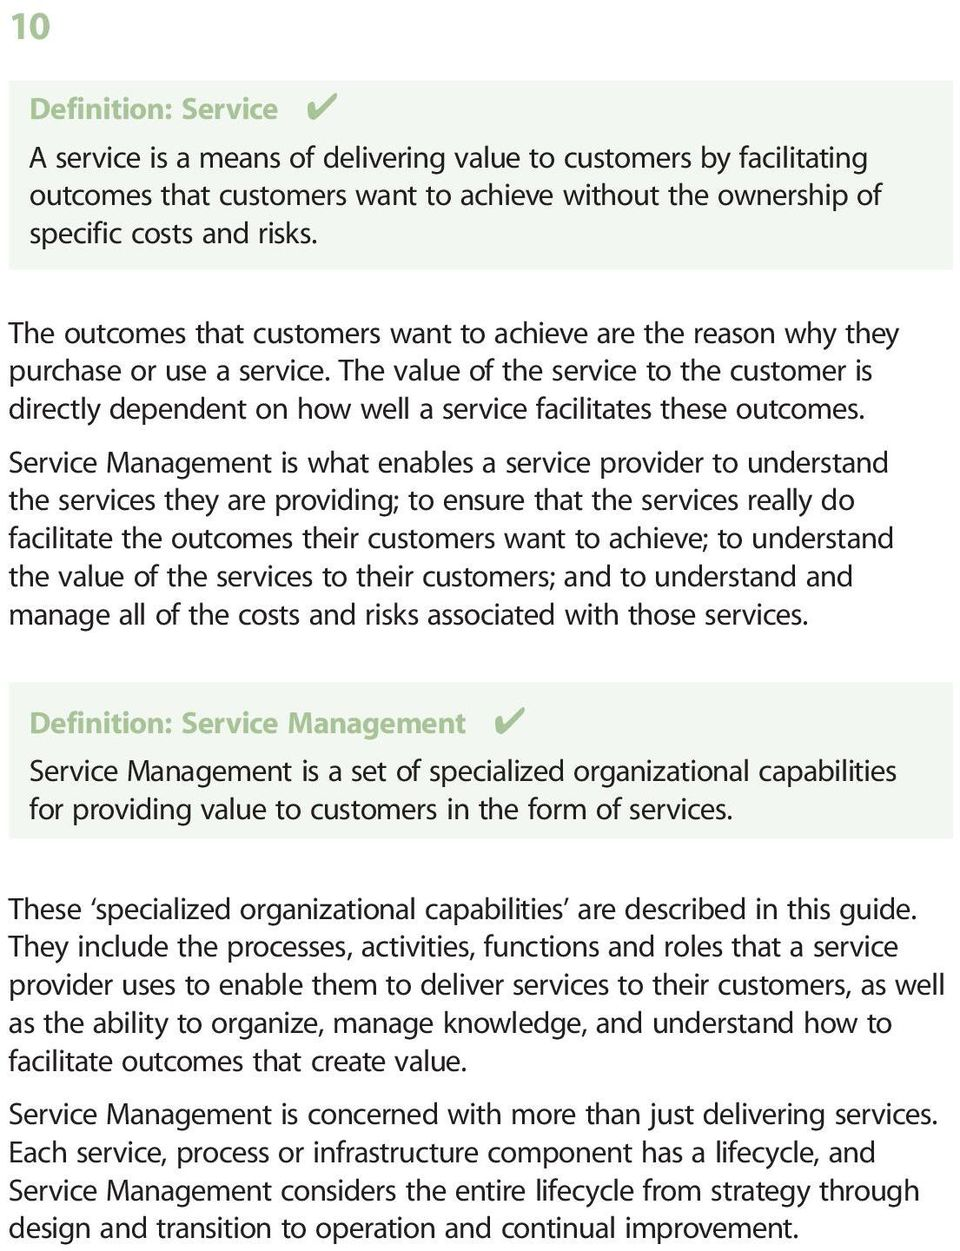 The value of the service to the customer is directly dependent on how well a service facilitates these outcomes.